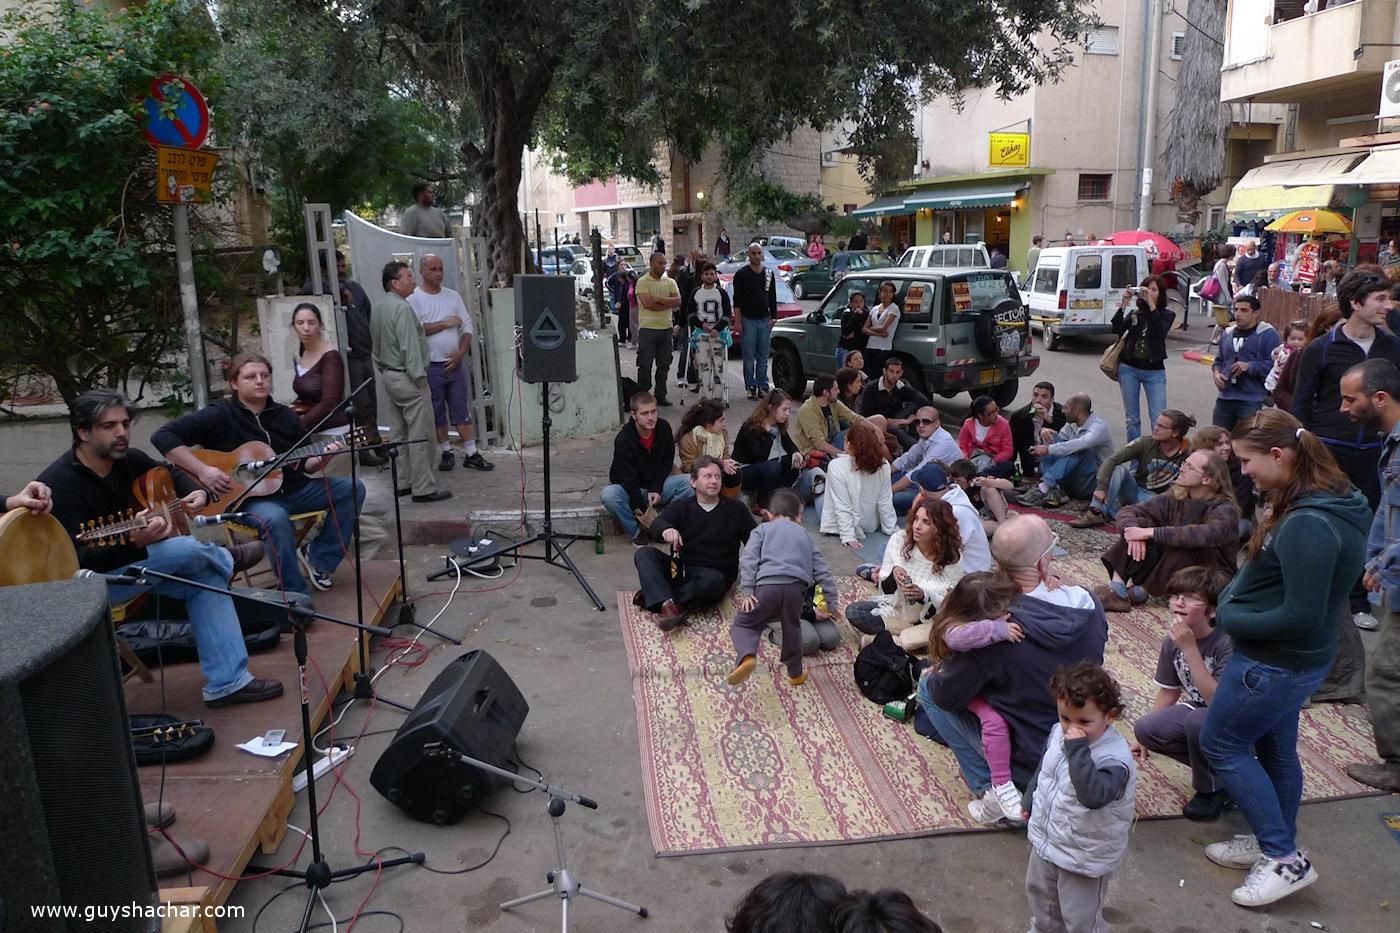 Street Party - A community initiative which is hardly adopted by the municipality